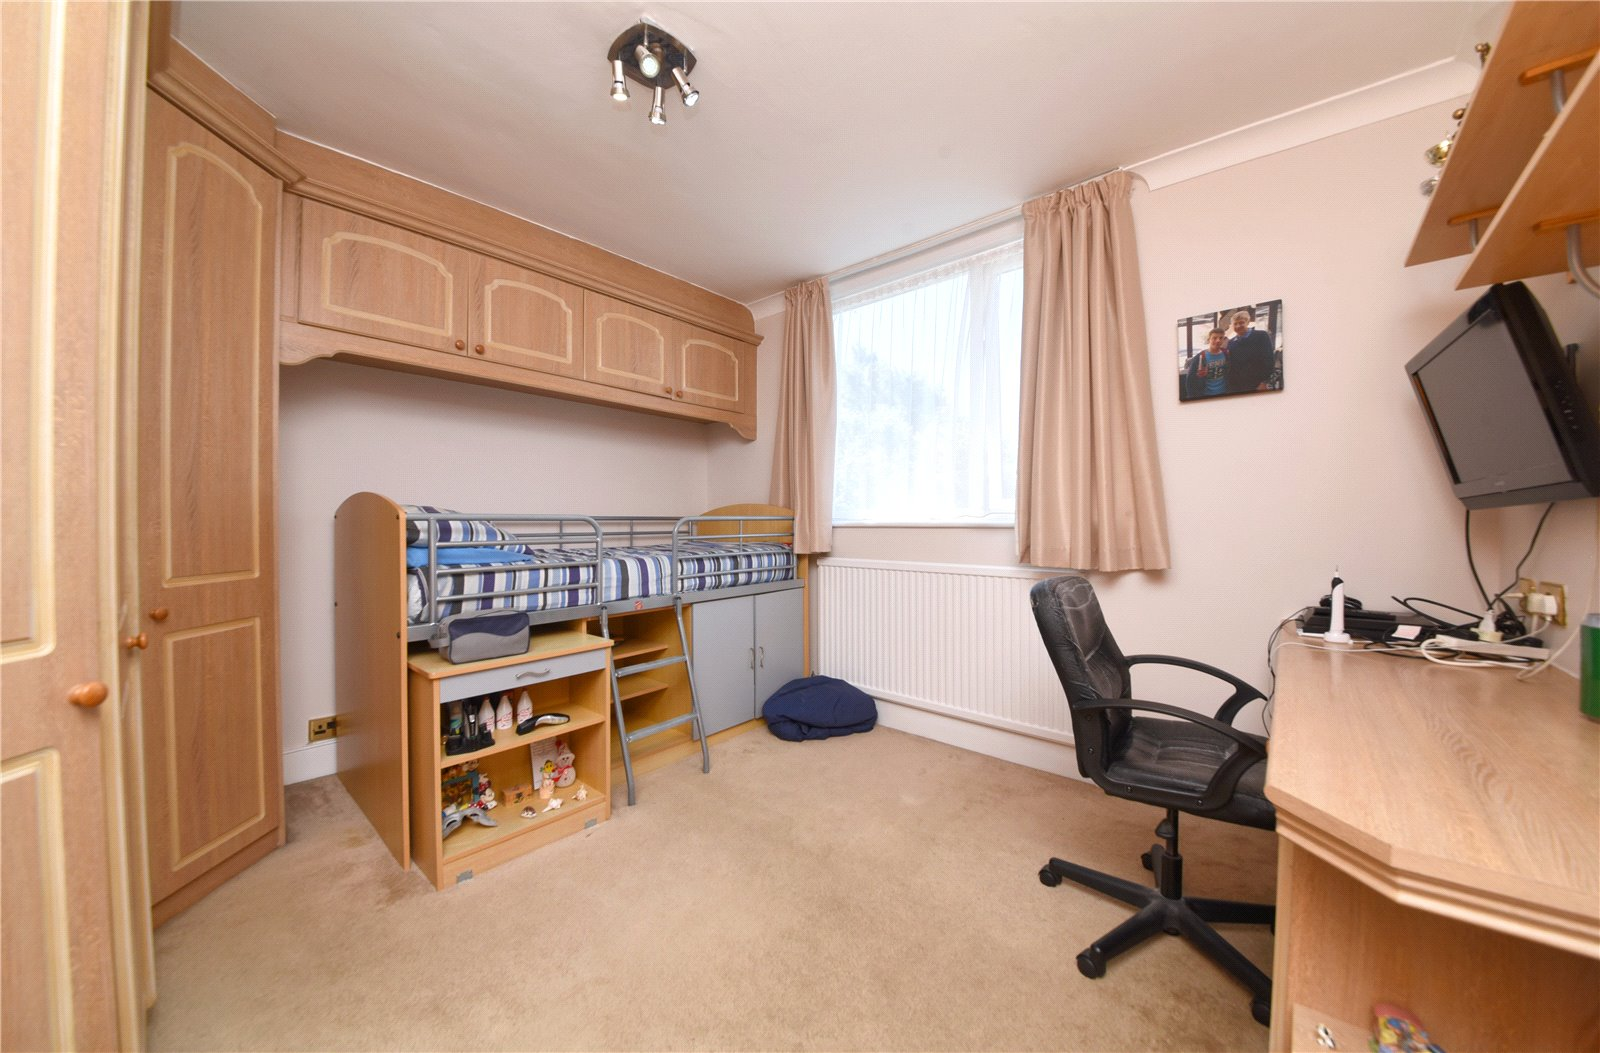 3 bed house for sale in The Fairway, Southgate  - Property Image 7